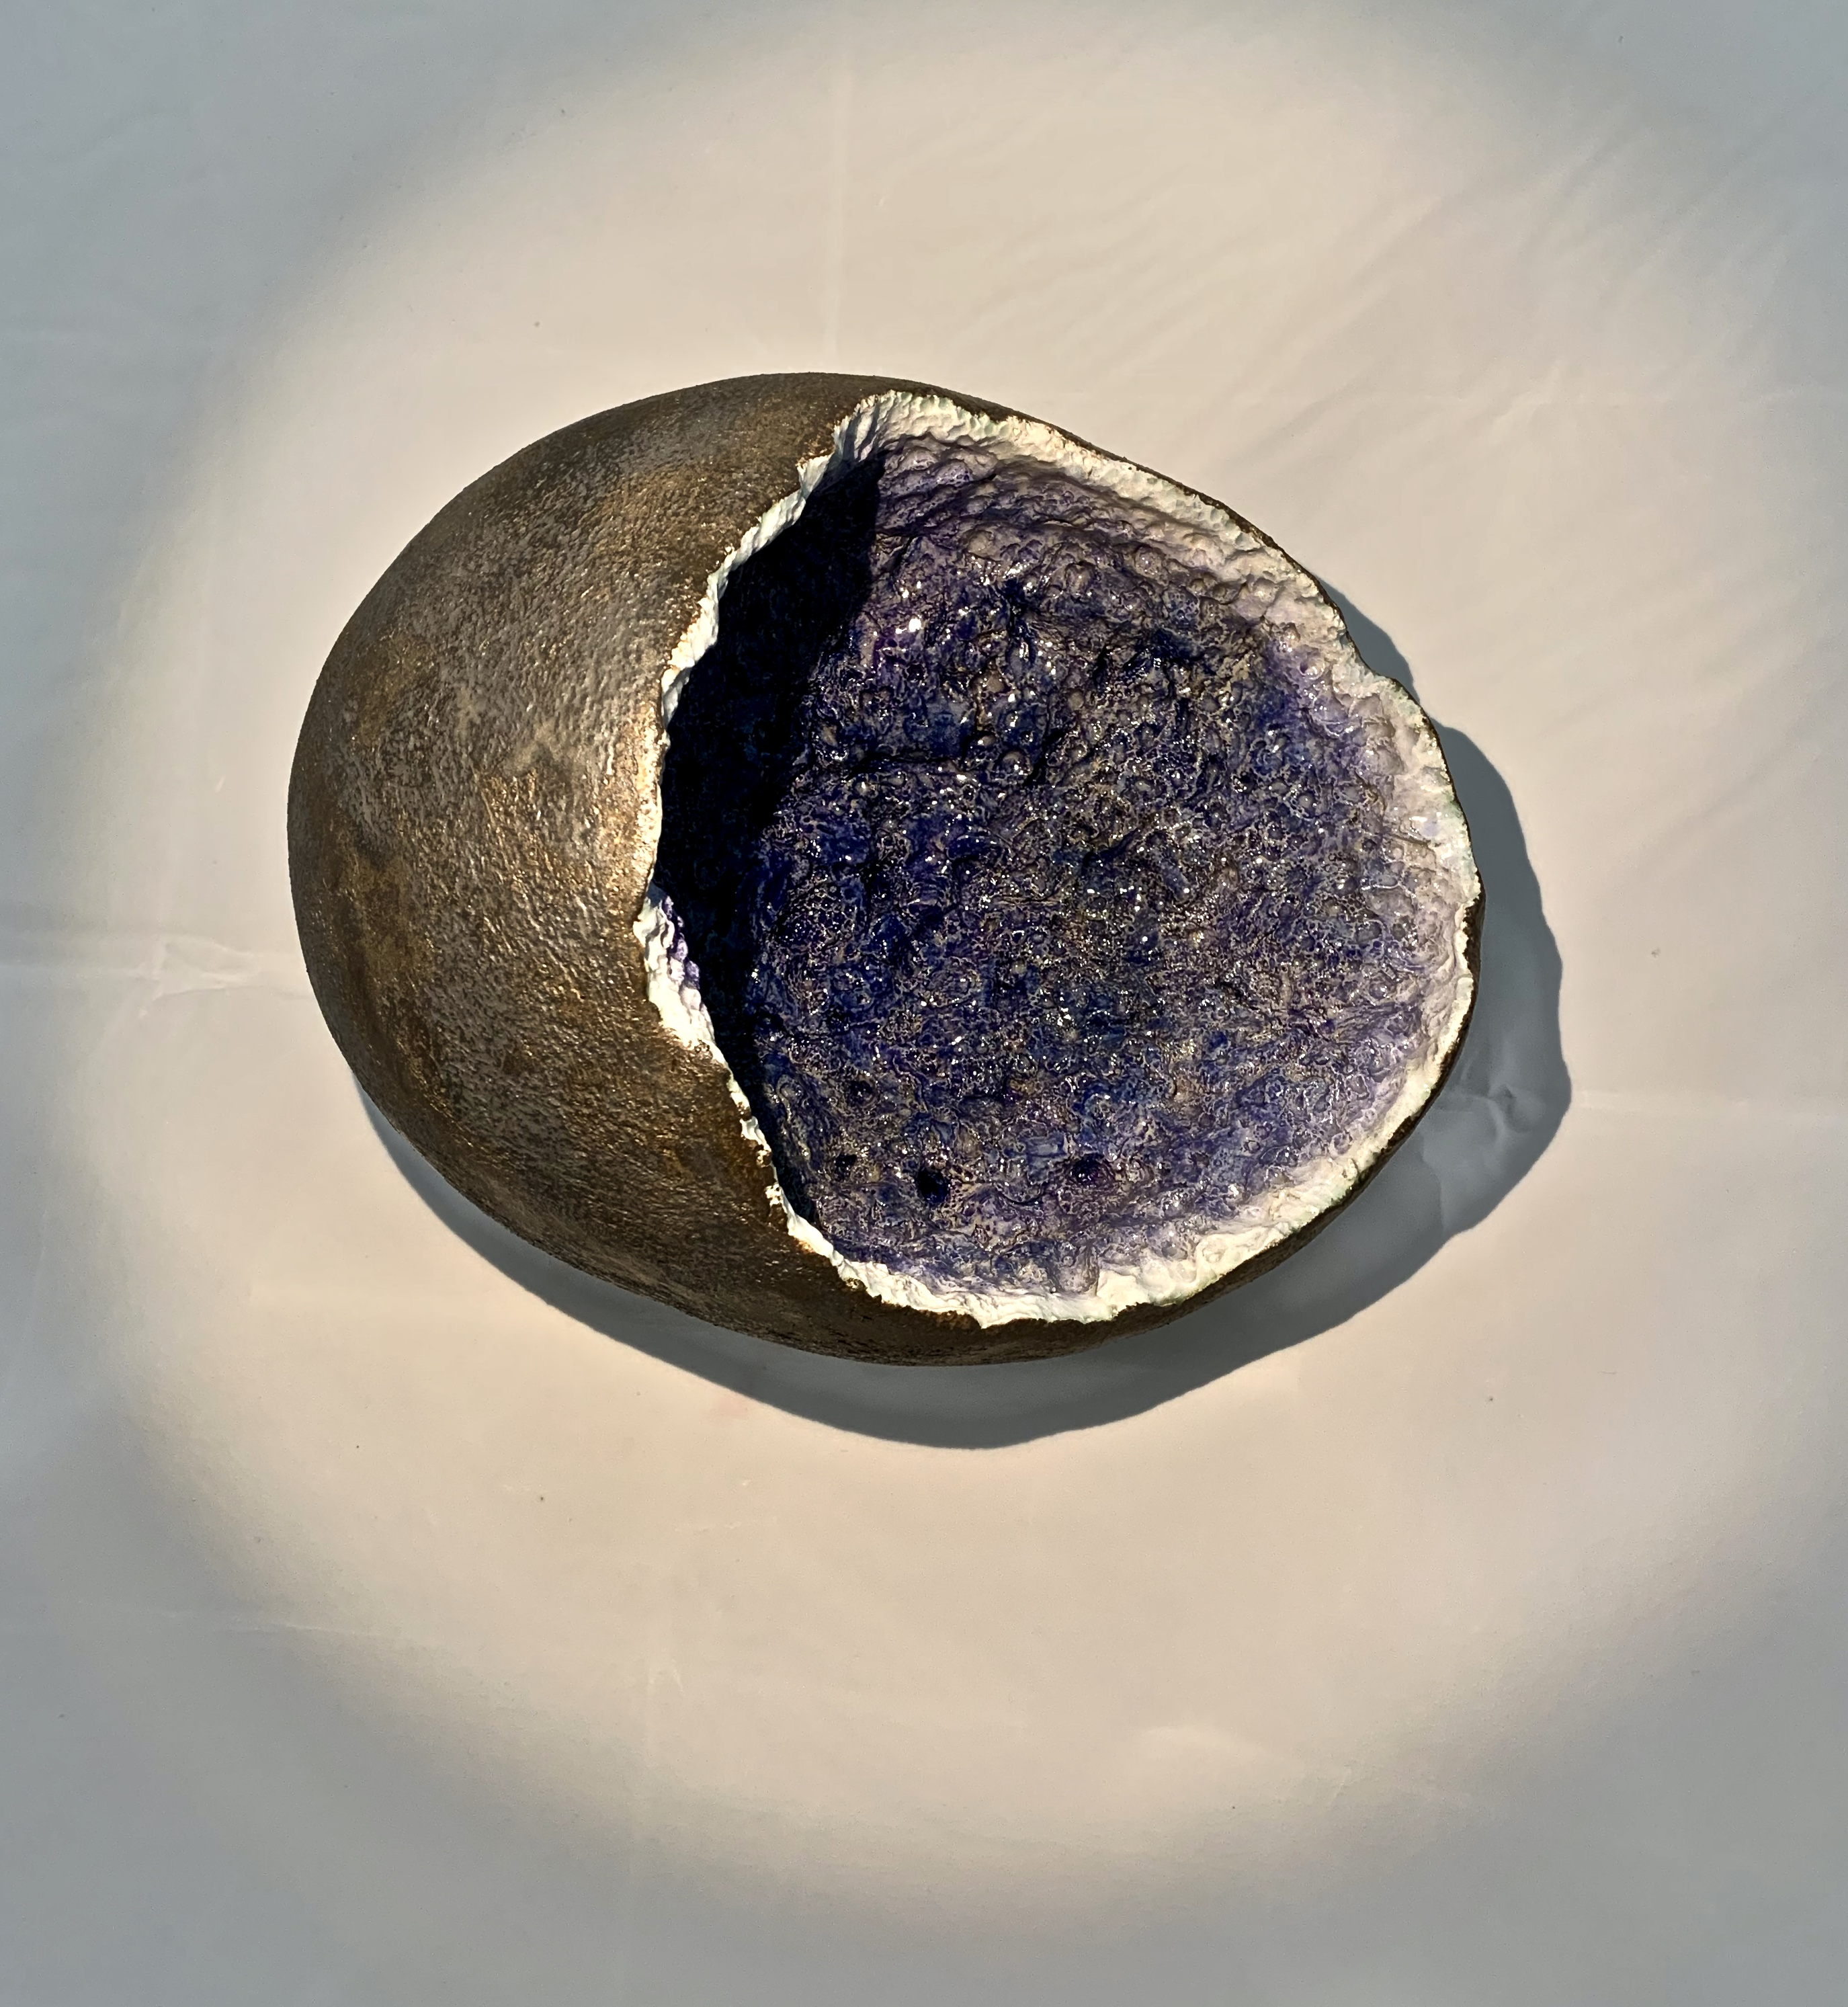 Large hollow Geode